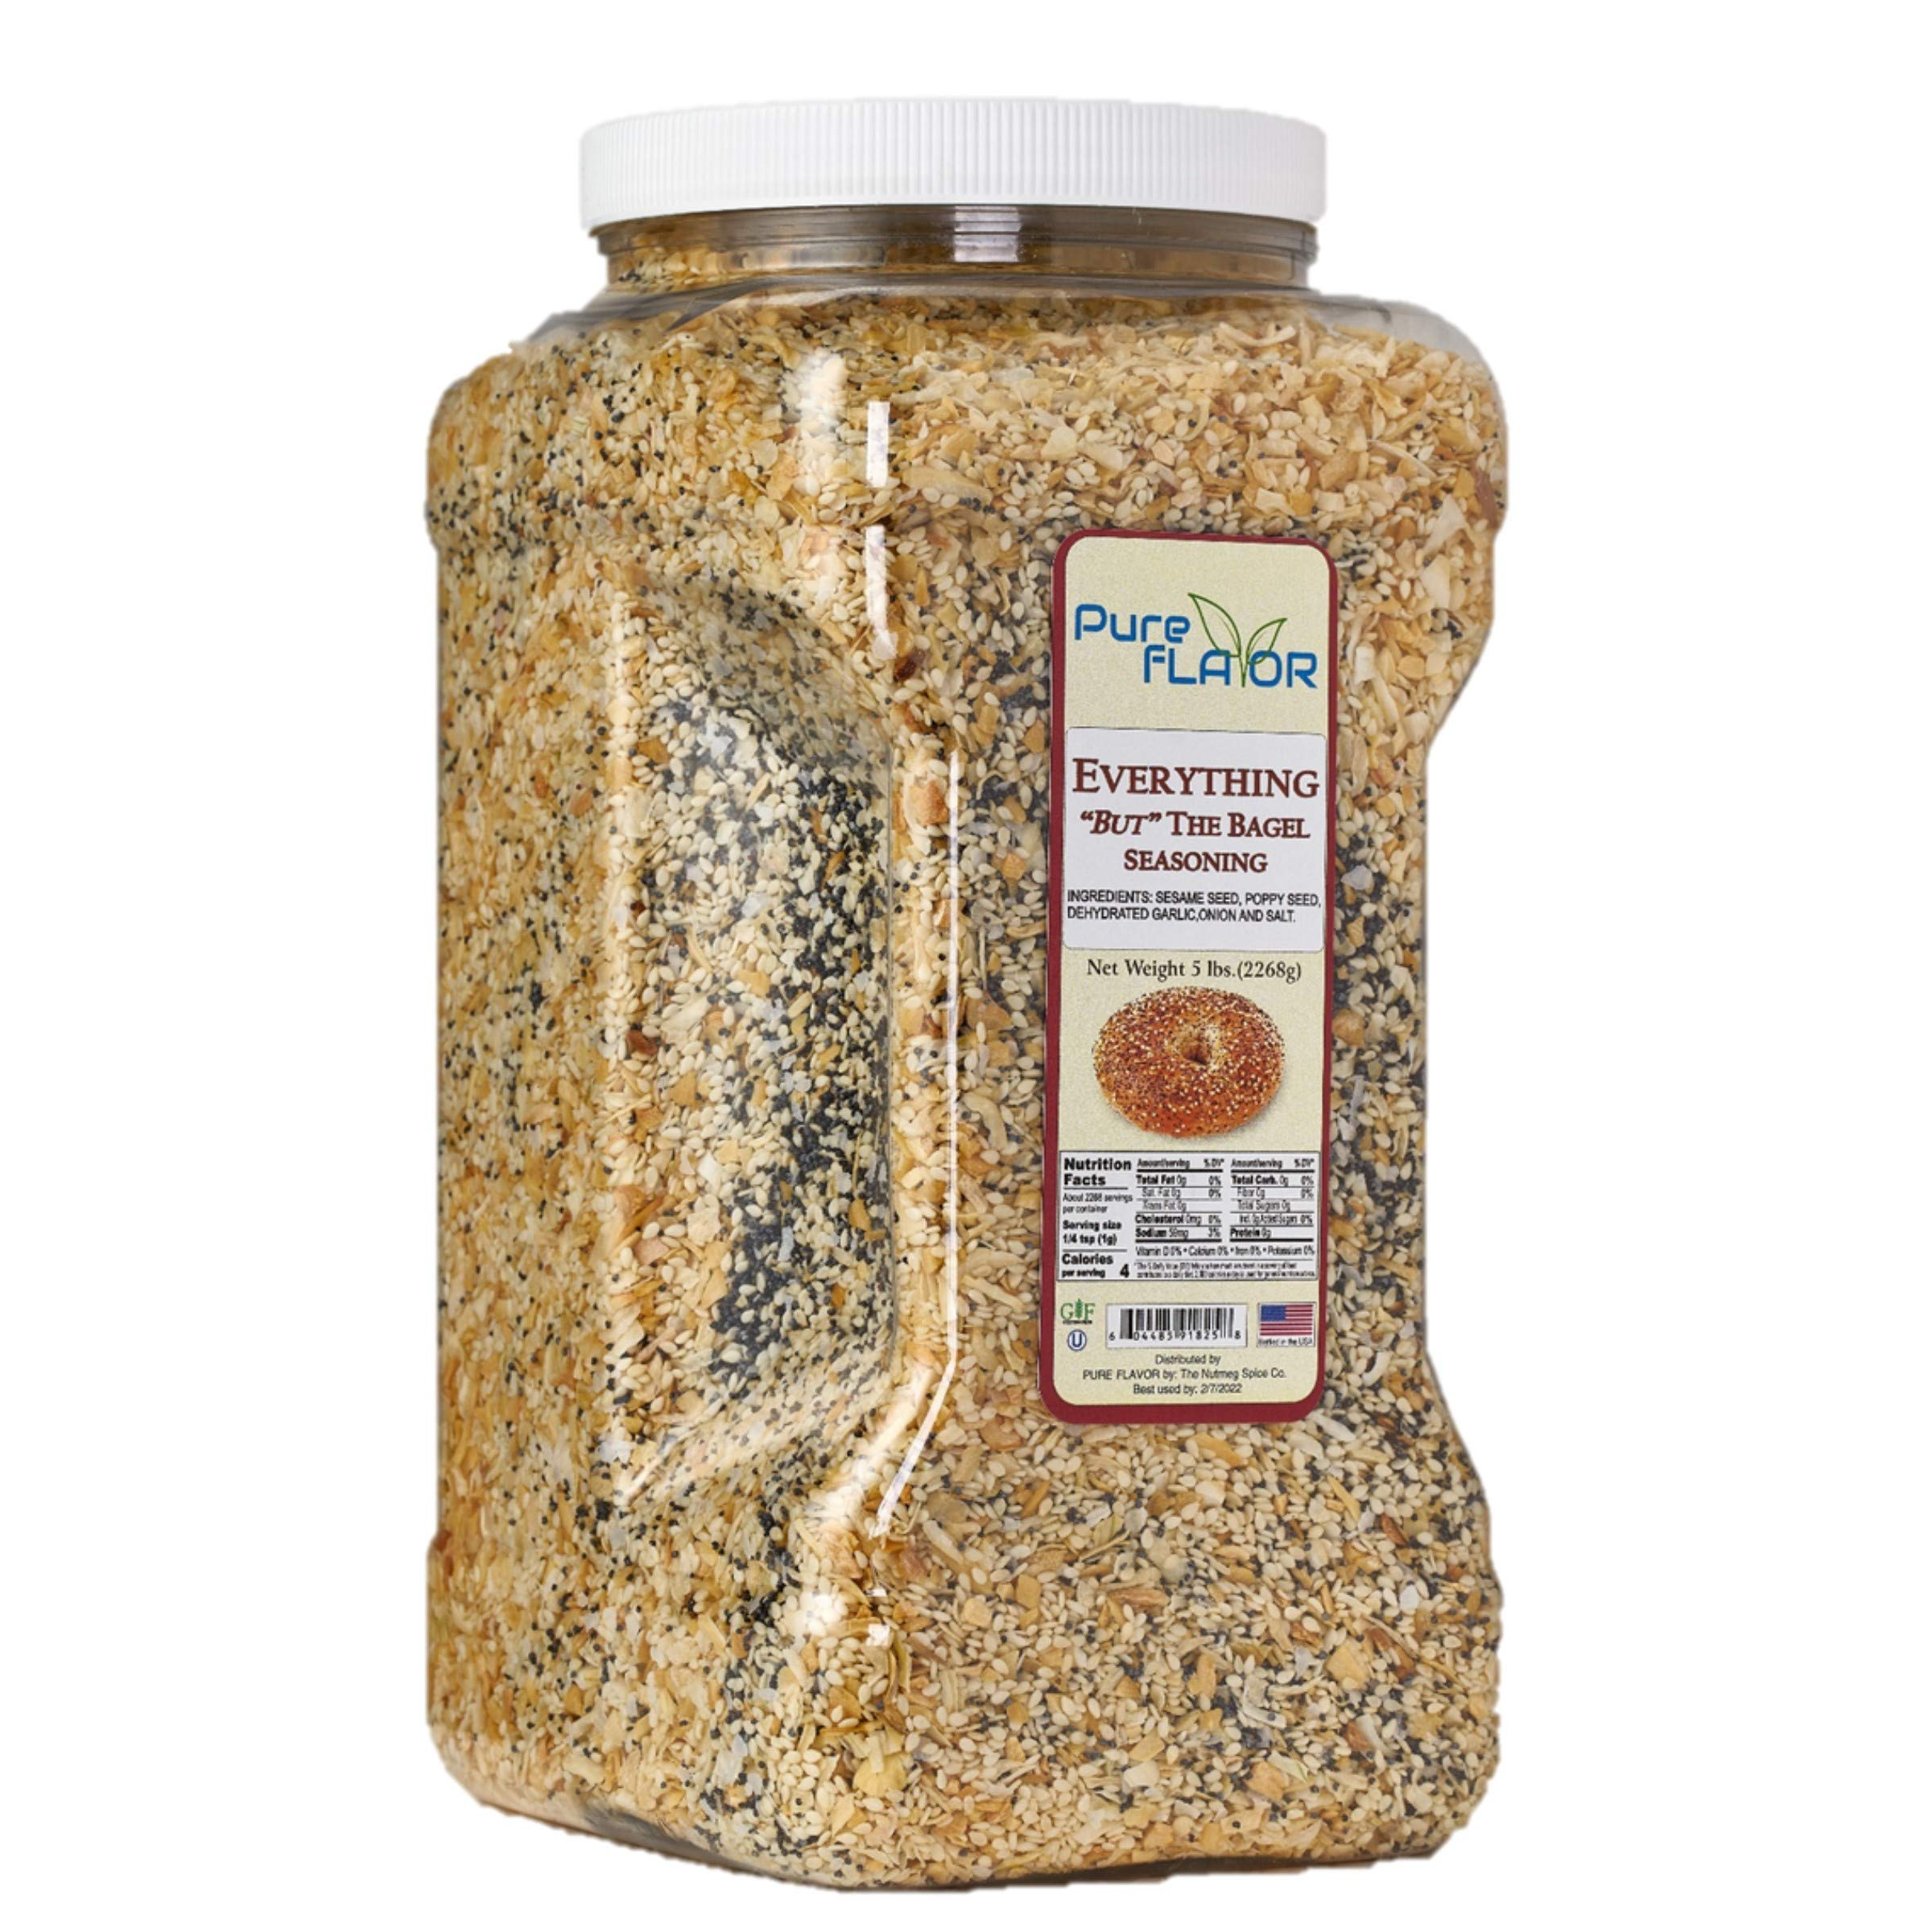 Everything Bagel Seasoning Blend, 5 lbs Bulk Jar (80 oz) - All Natural, All Purpose Specialty Spice Mix - Sea Salt, Dried Onion, Poppy Seeds, Sesame, Garlic Powder and More